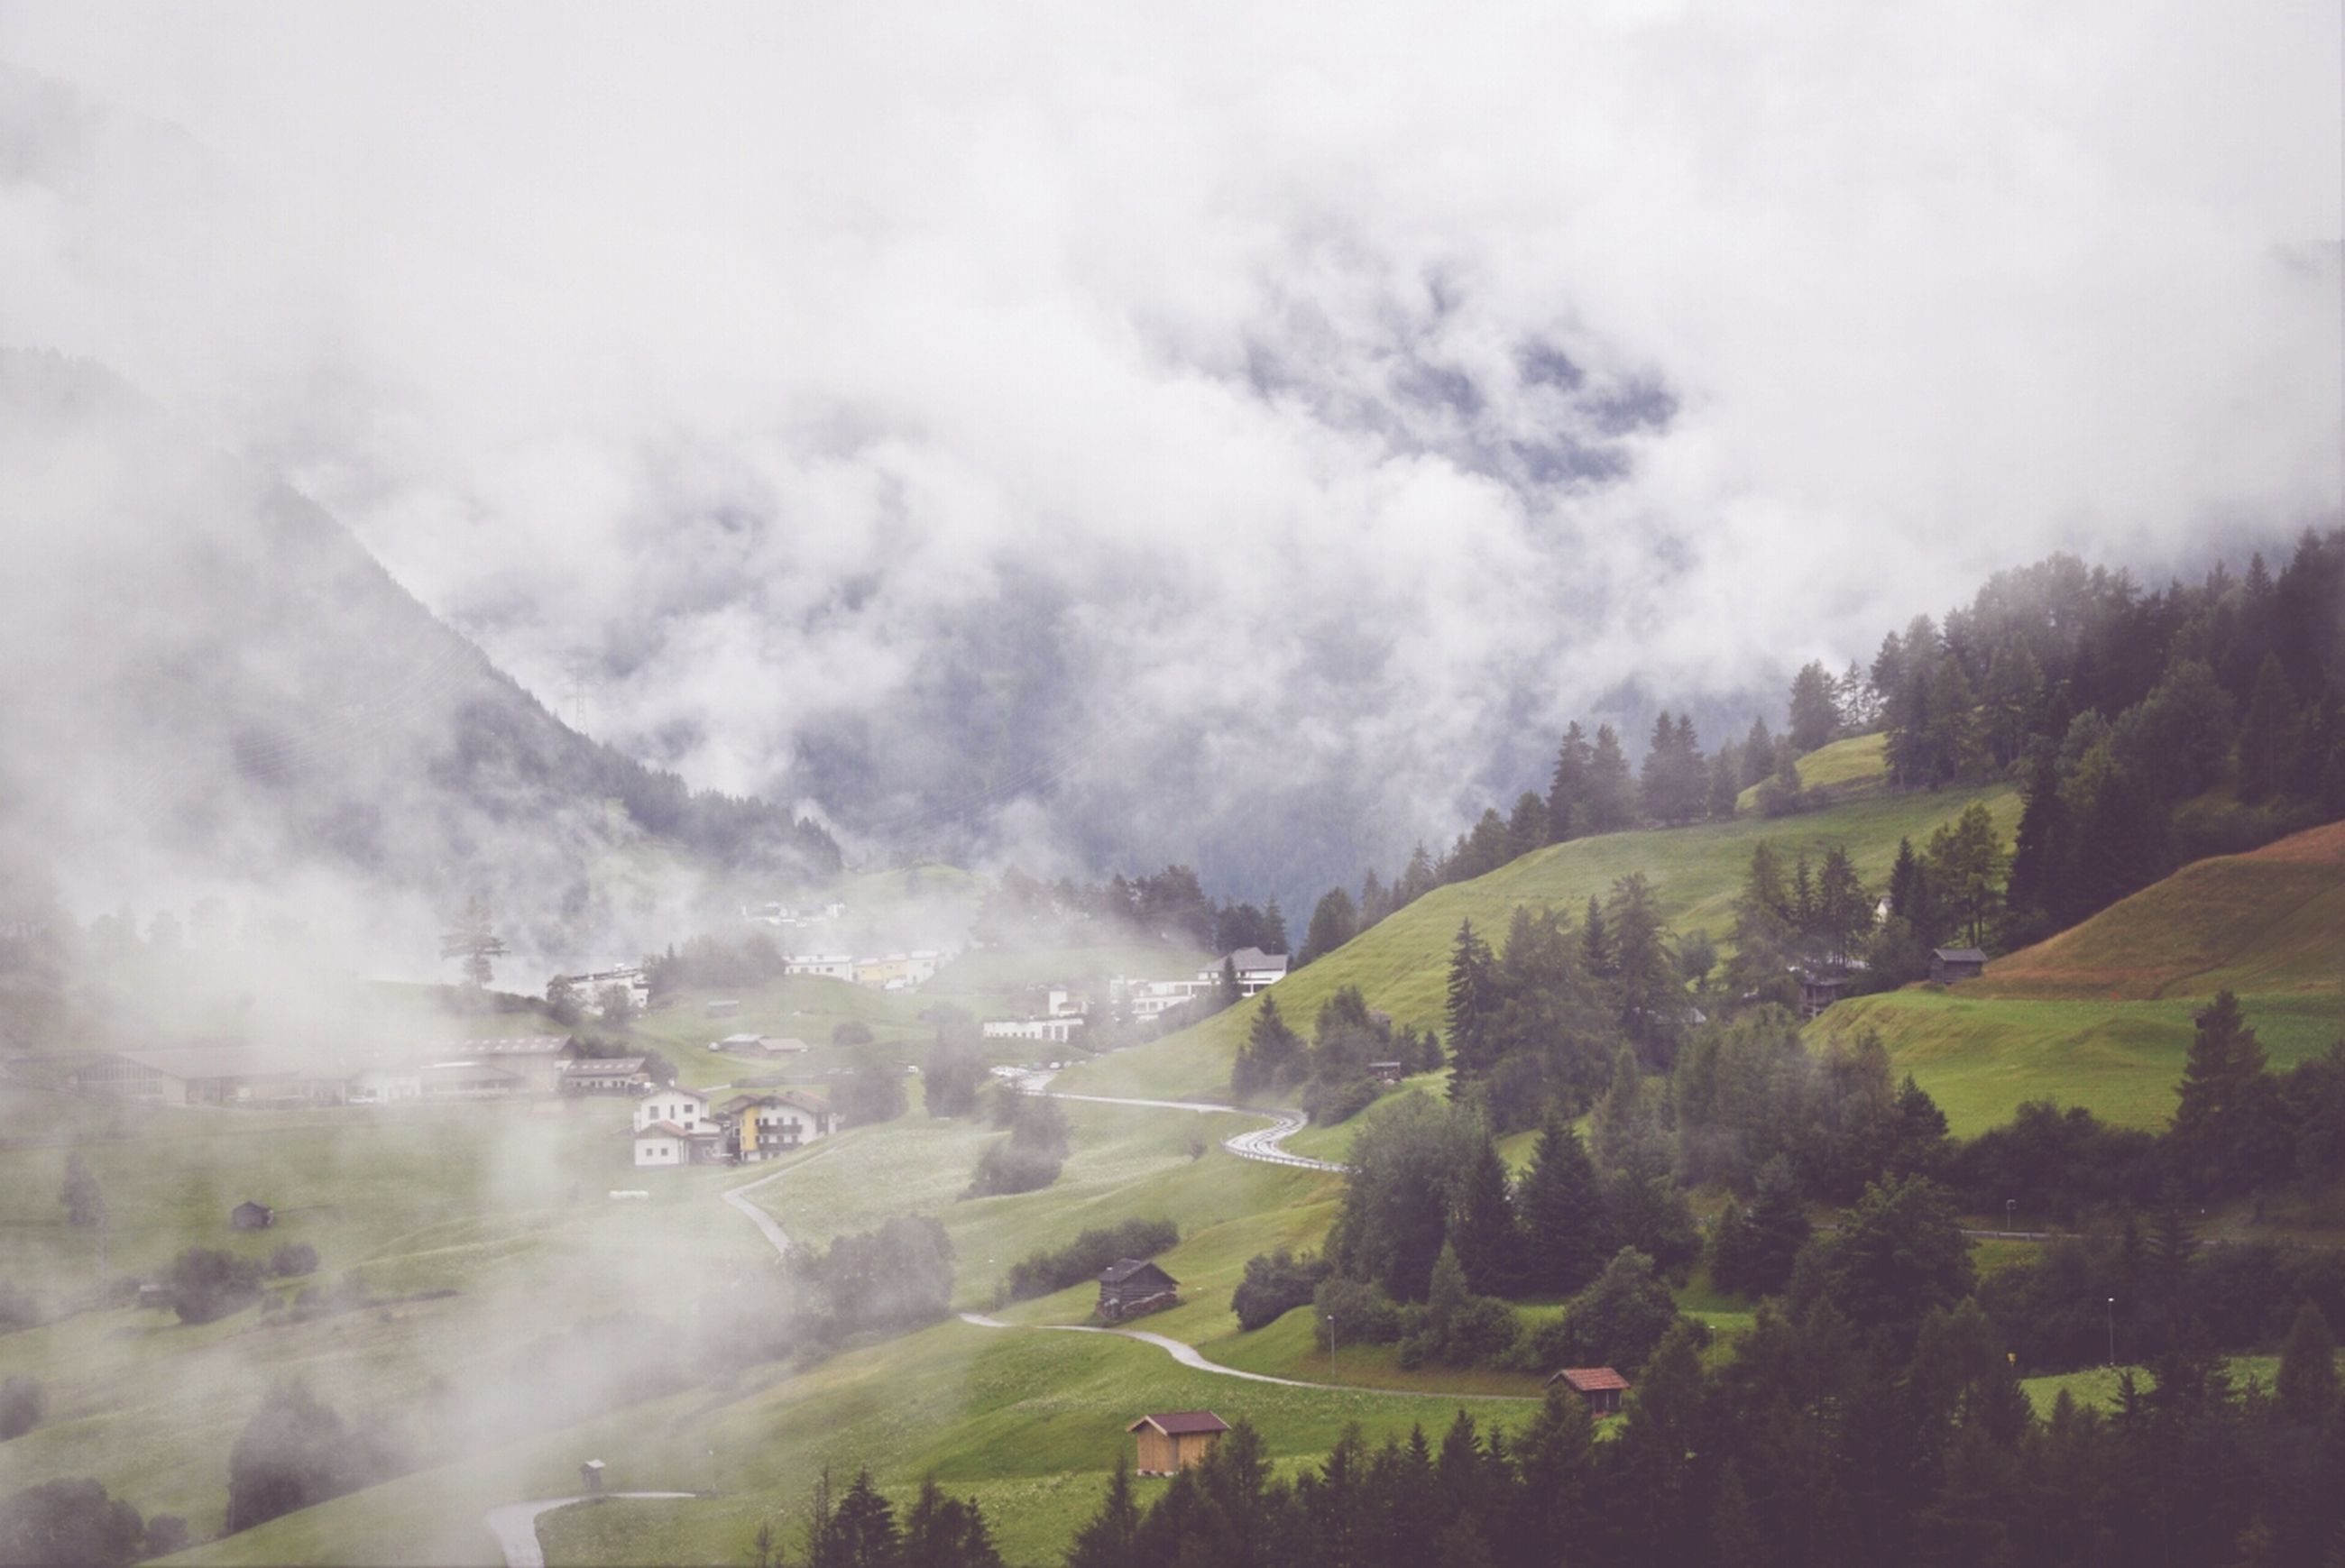 landscape, mountain, sky, scenics, transportation, tranquil scene, tree, tranquility, weather, beauty in nature, nature, cloud - sky, fog, green color, non-urban scene, field, road, cloudy, day, high angle view